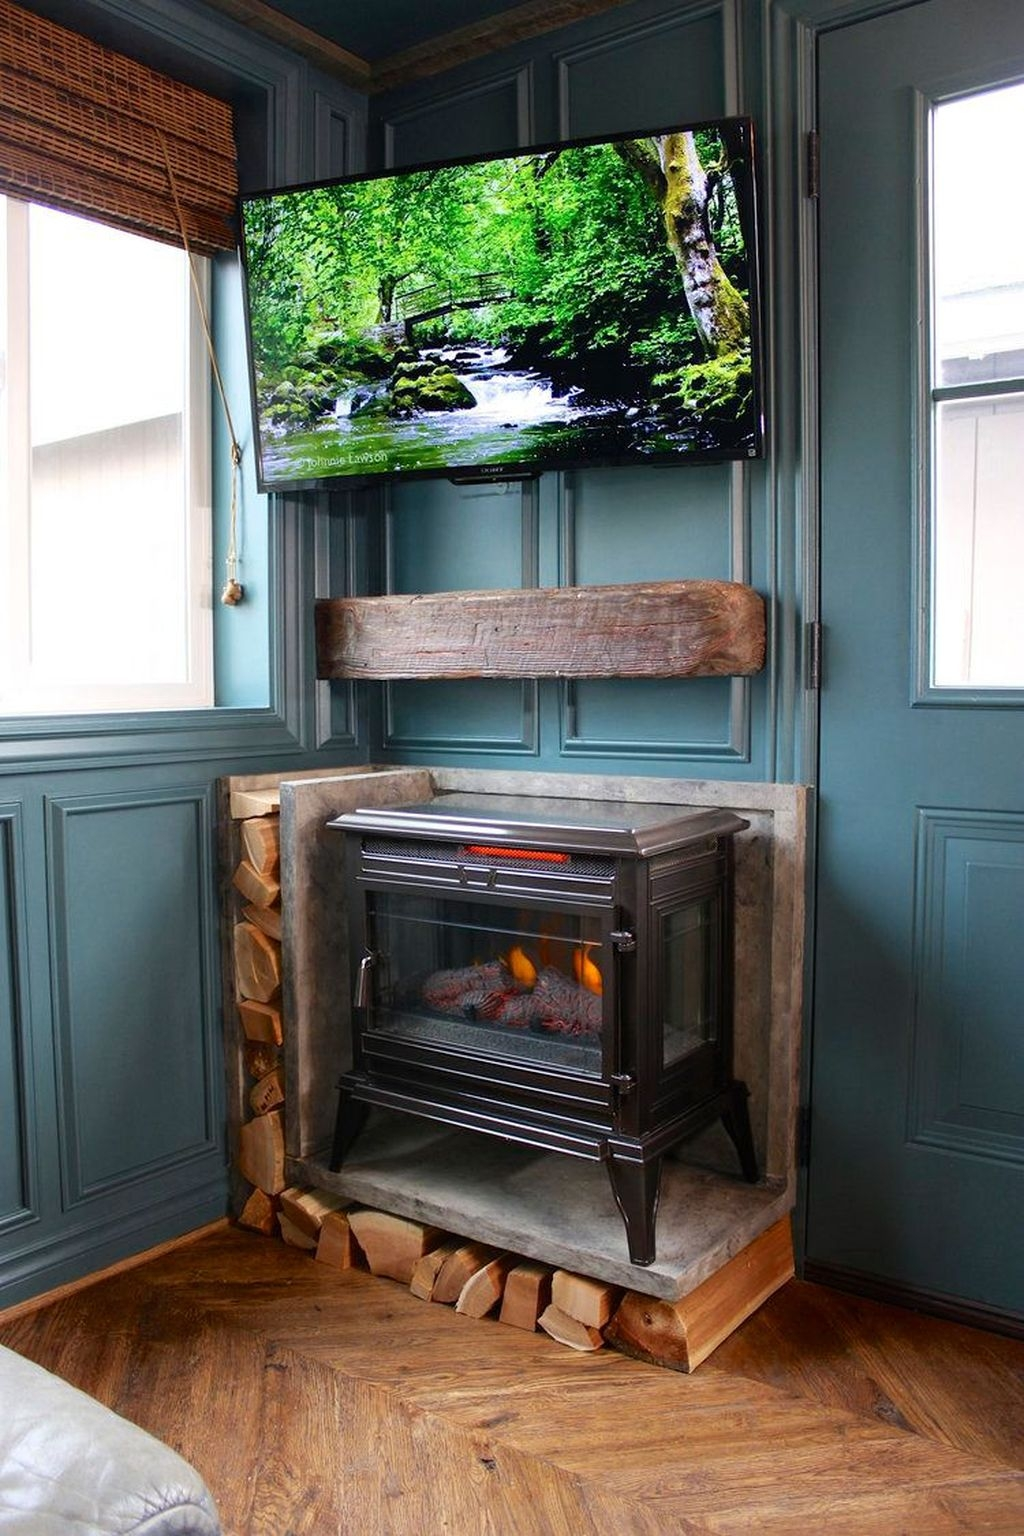 Awesome Fireplace Design Ideas For Small Houses 22